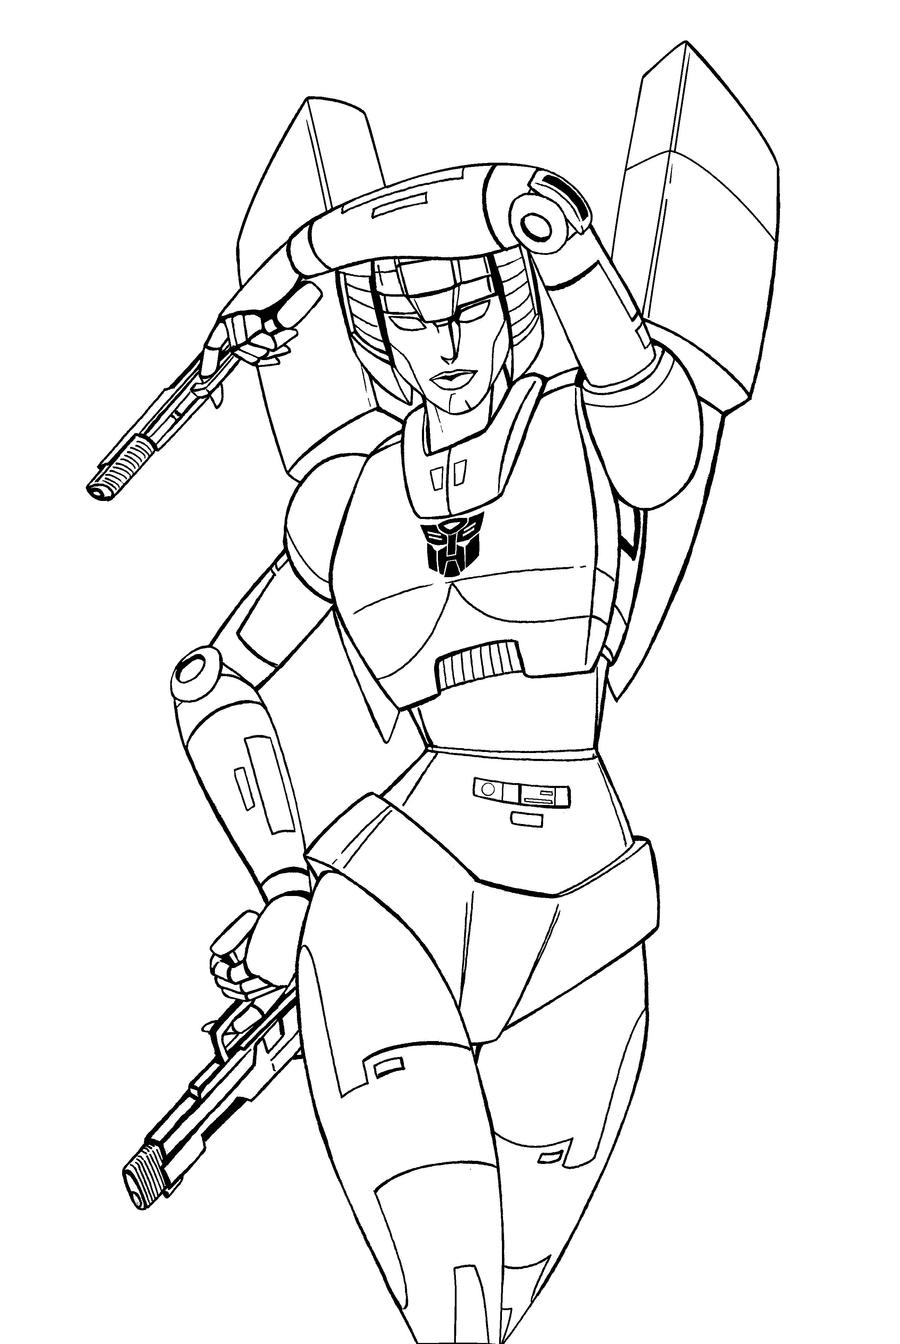 Transformers g1 arcee pages coloring pages for Transformers g1 coloring pages